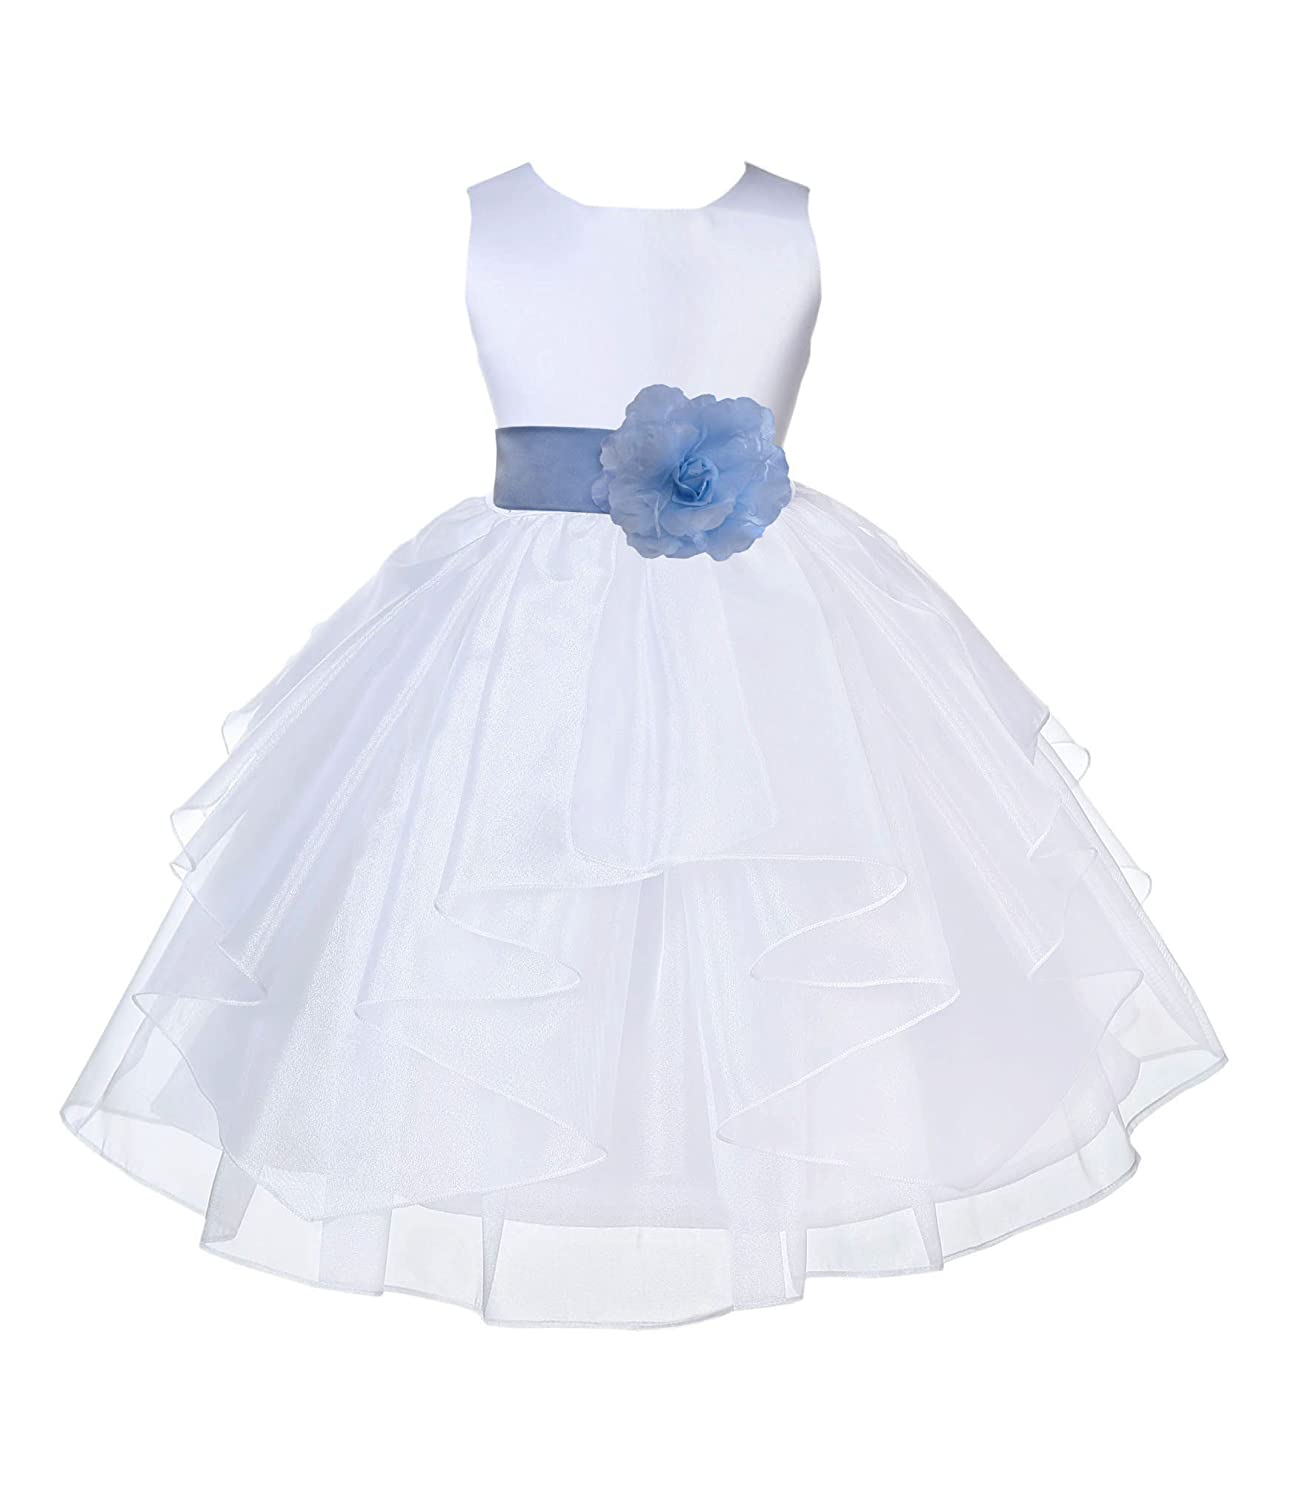 ekidsbridal White Satin Shimmering Organza Flower Girl Dress Christening Dresses 4613S